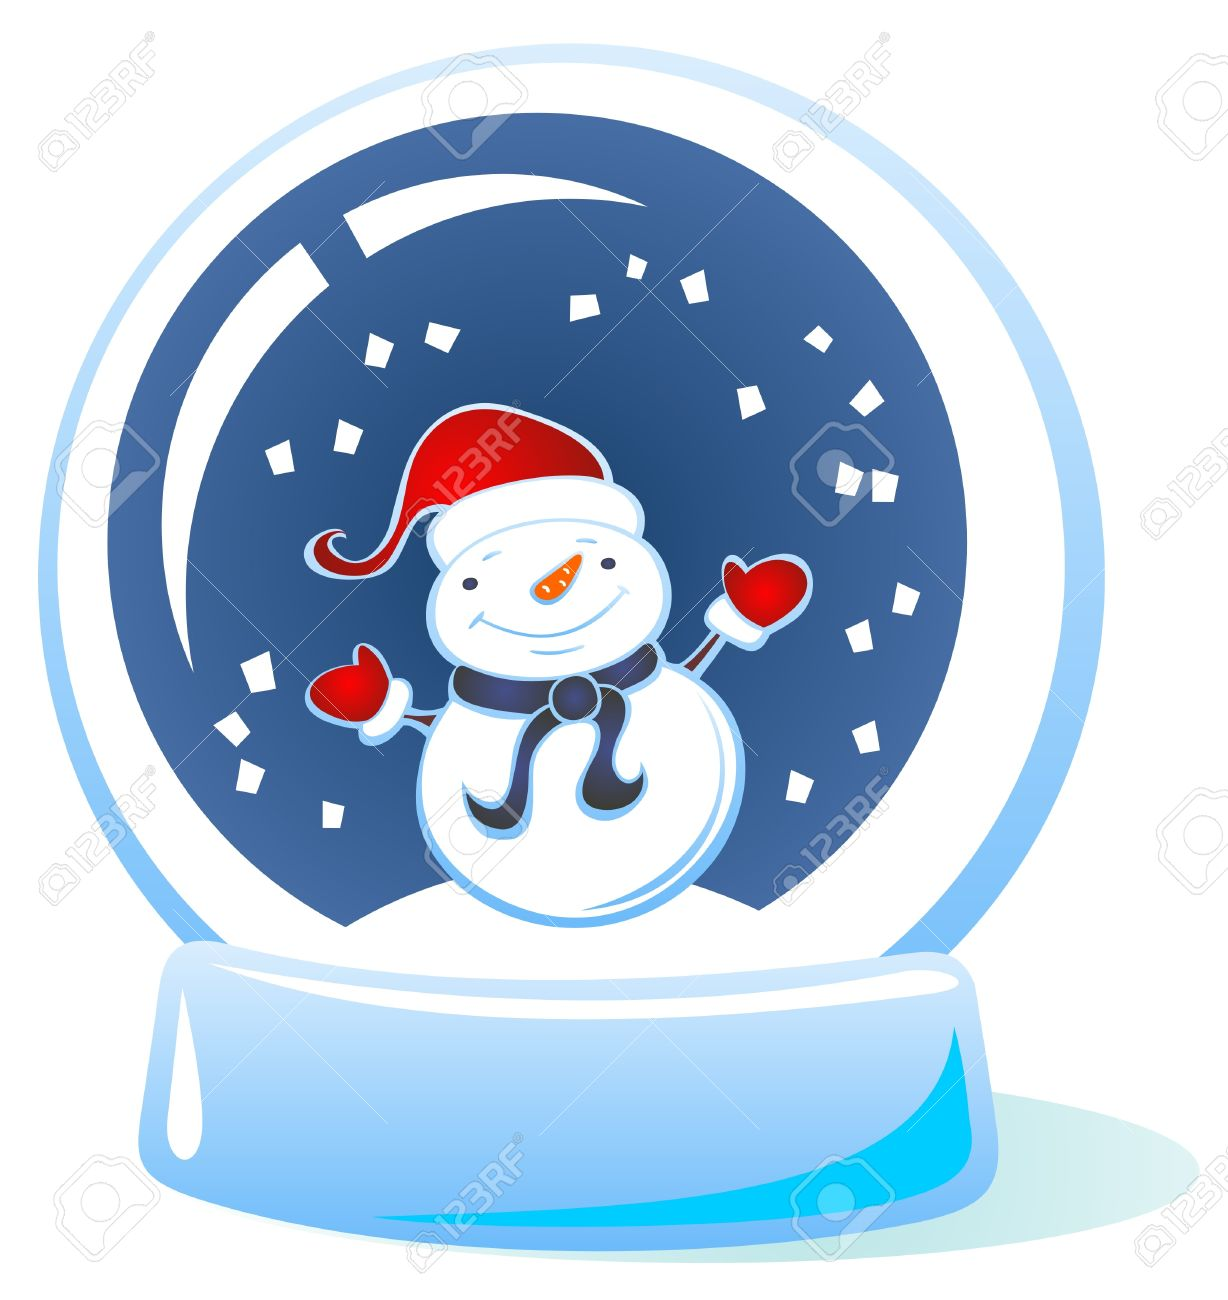 Snowman Snow Globe 2222 Snowglobe Stock Illustrations Cliparts And Royalty Free